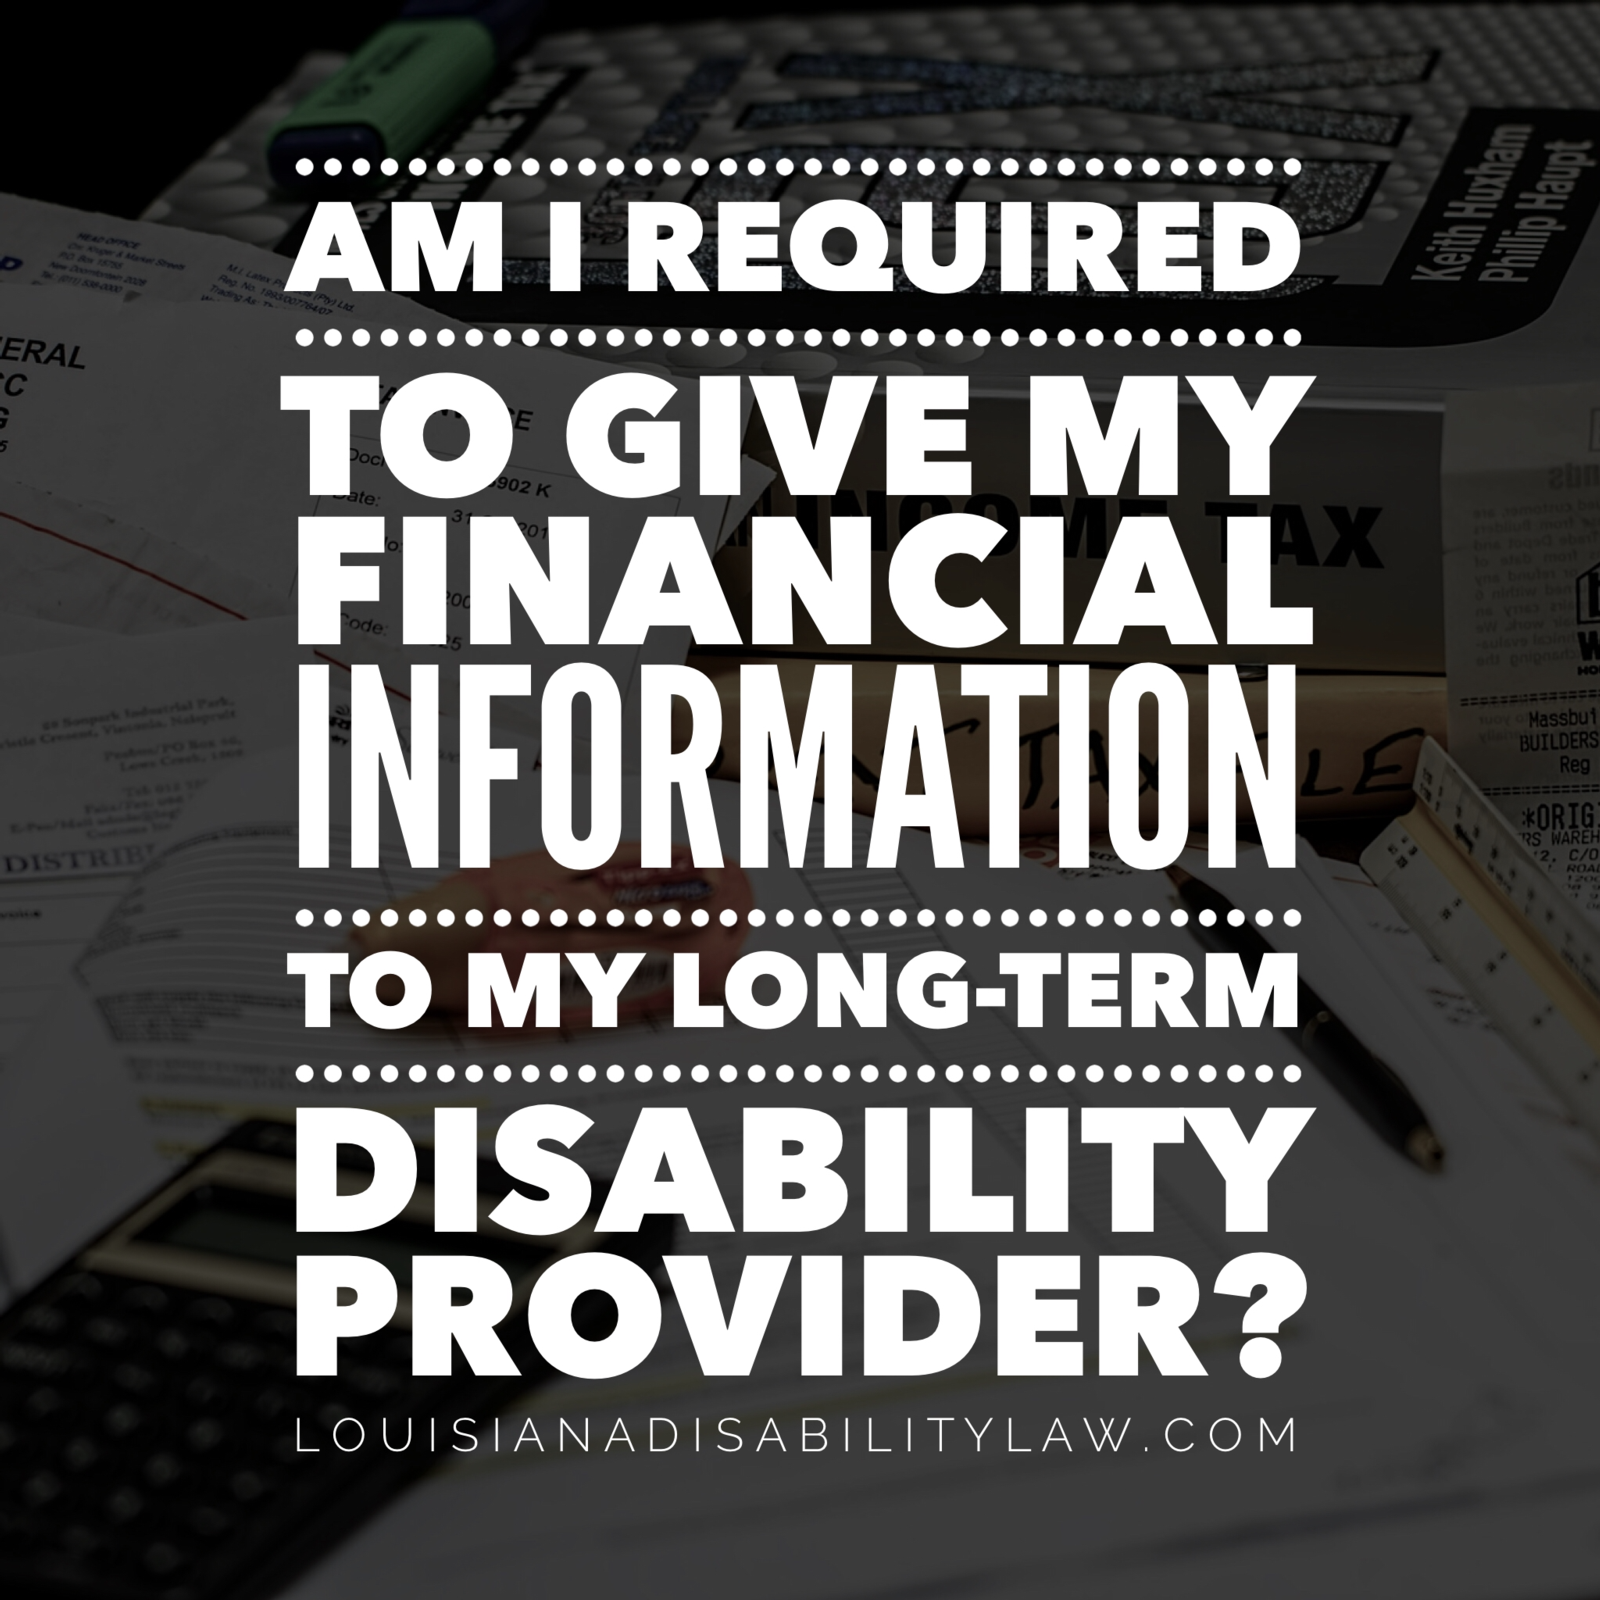 Am I required to give my financial information to my Long-Term Disability provider?